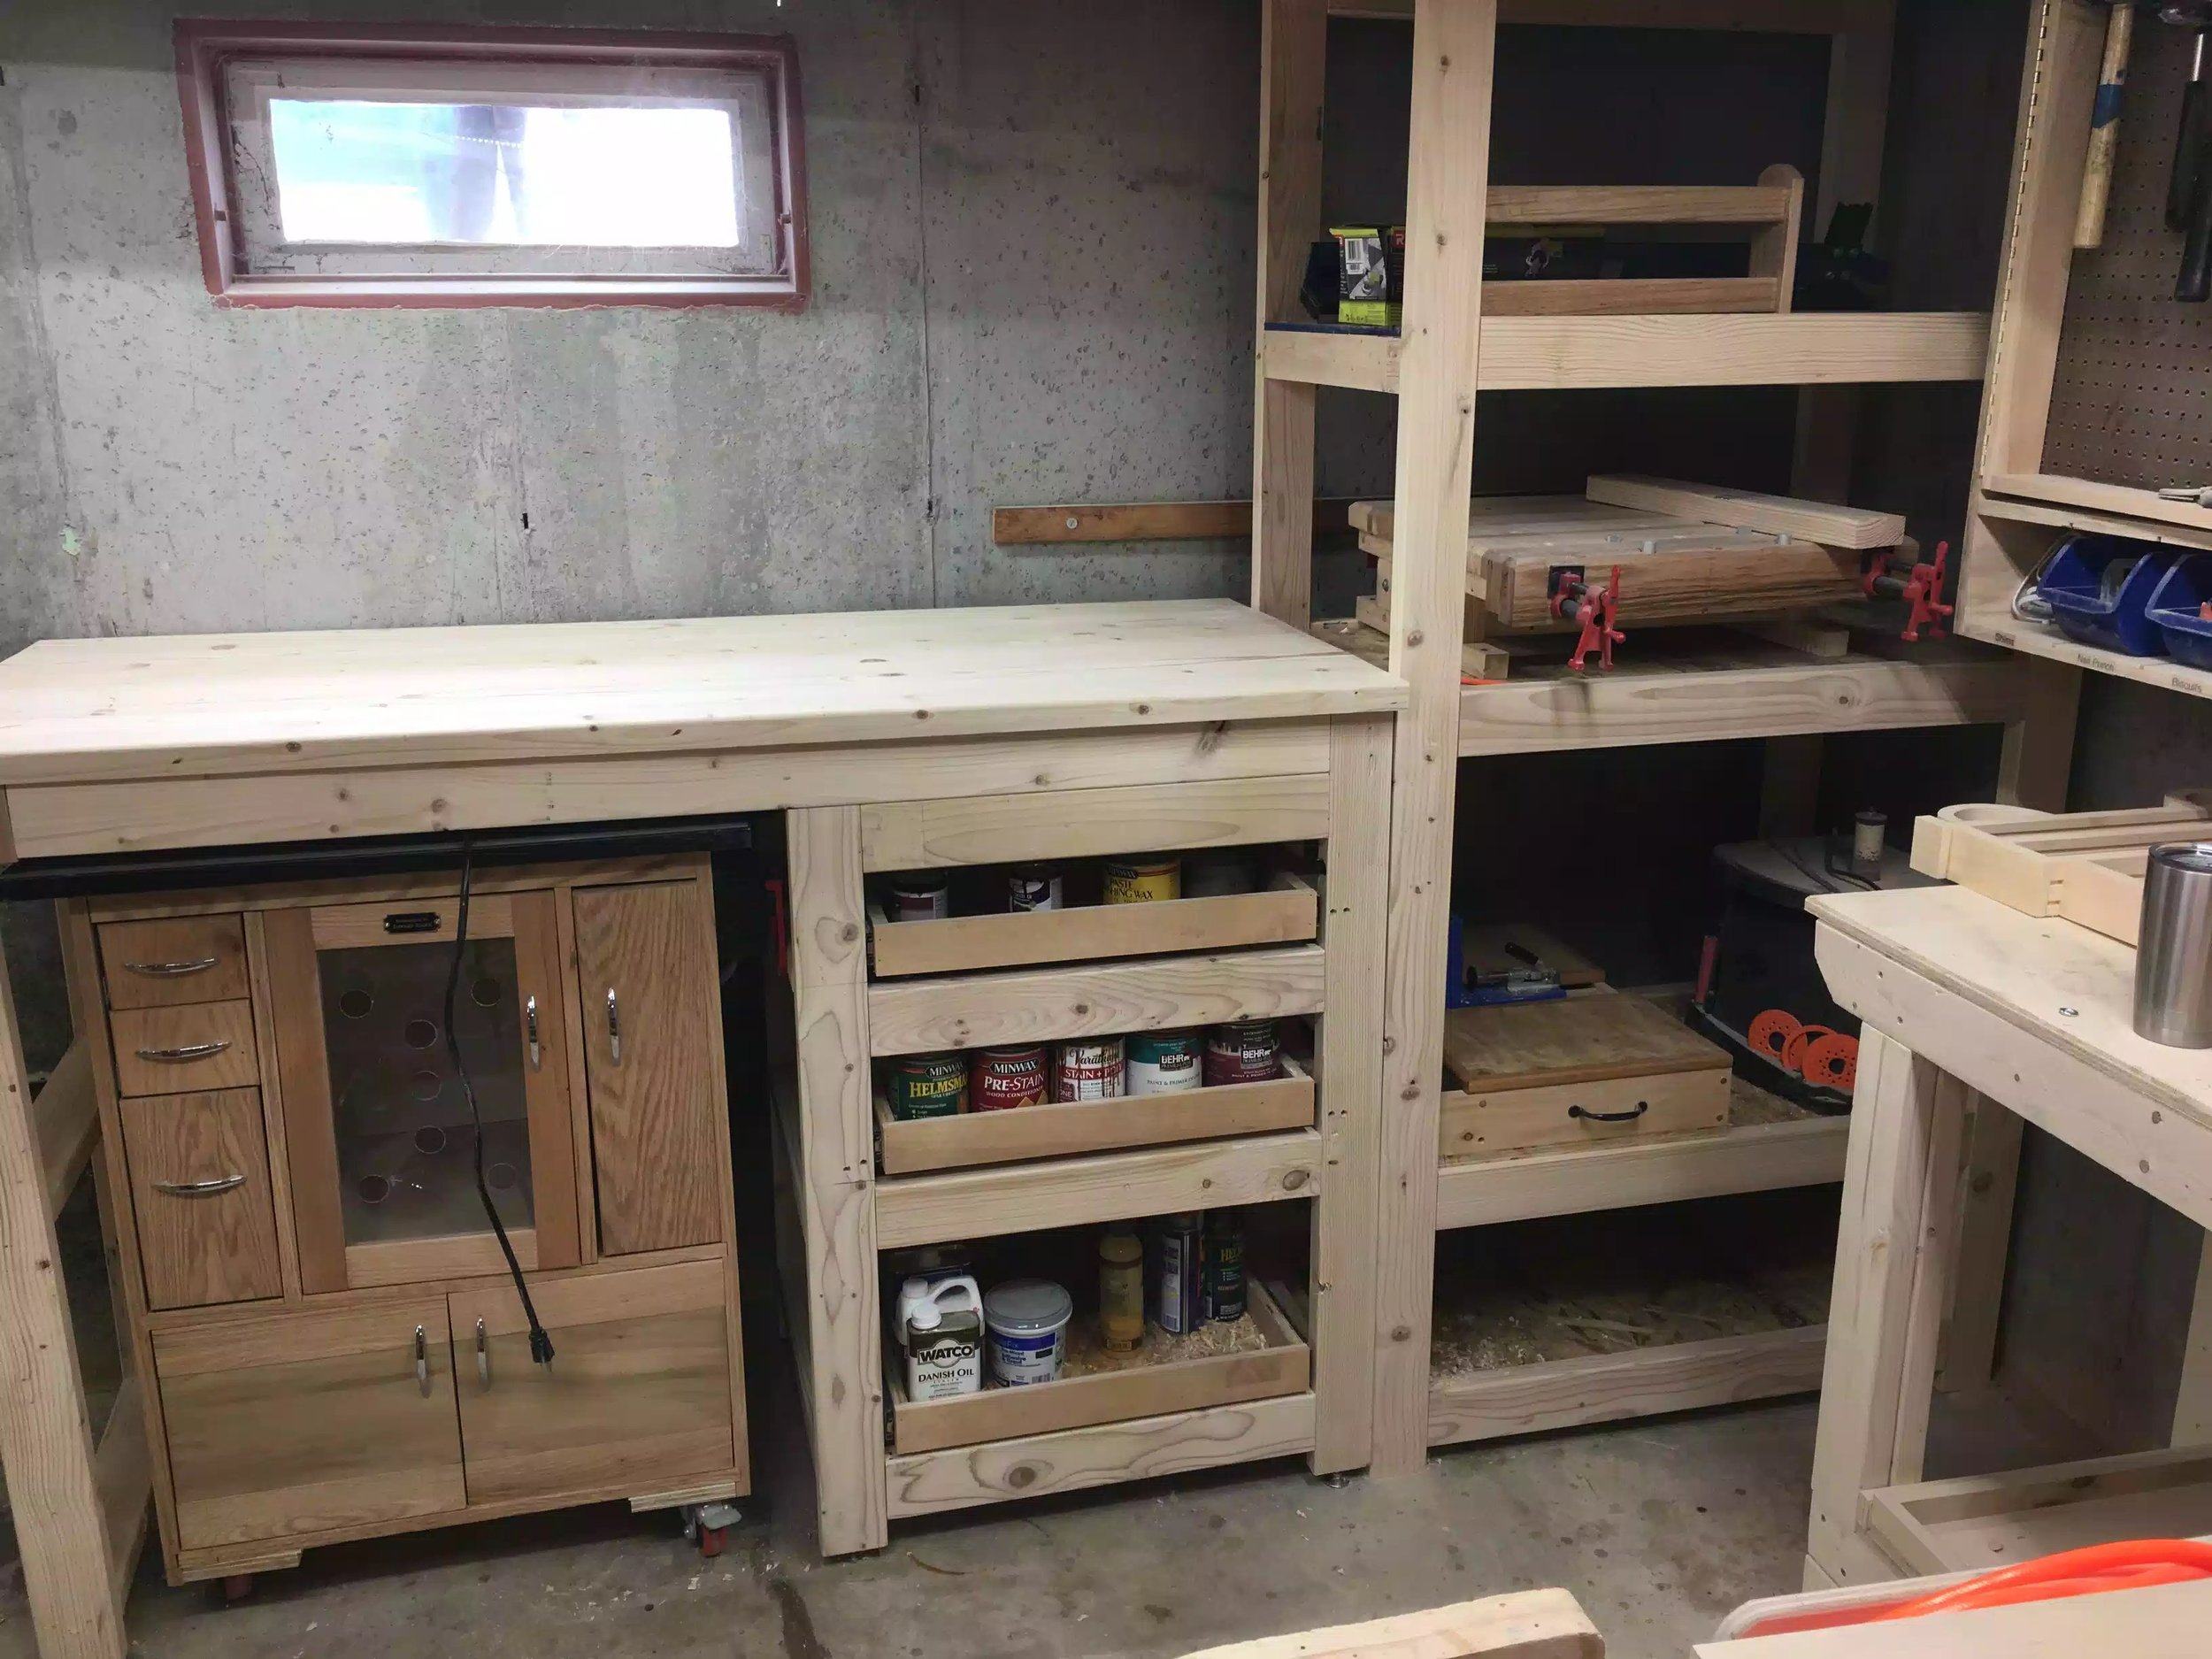 Shelving Unit & Bench